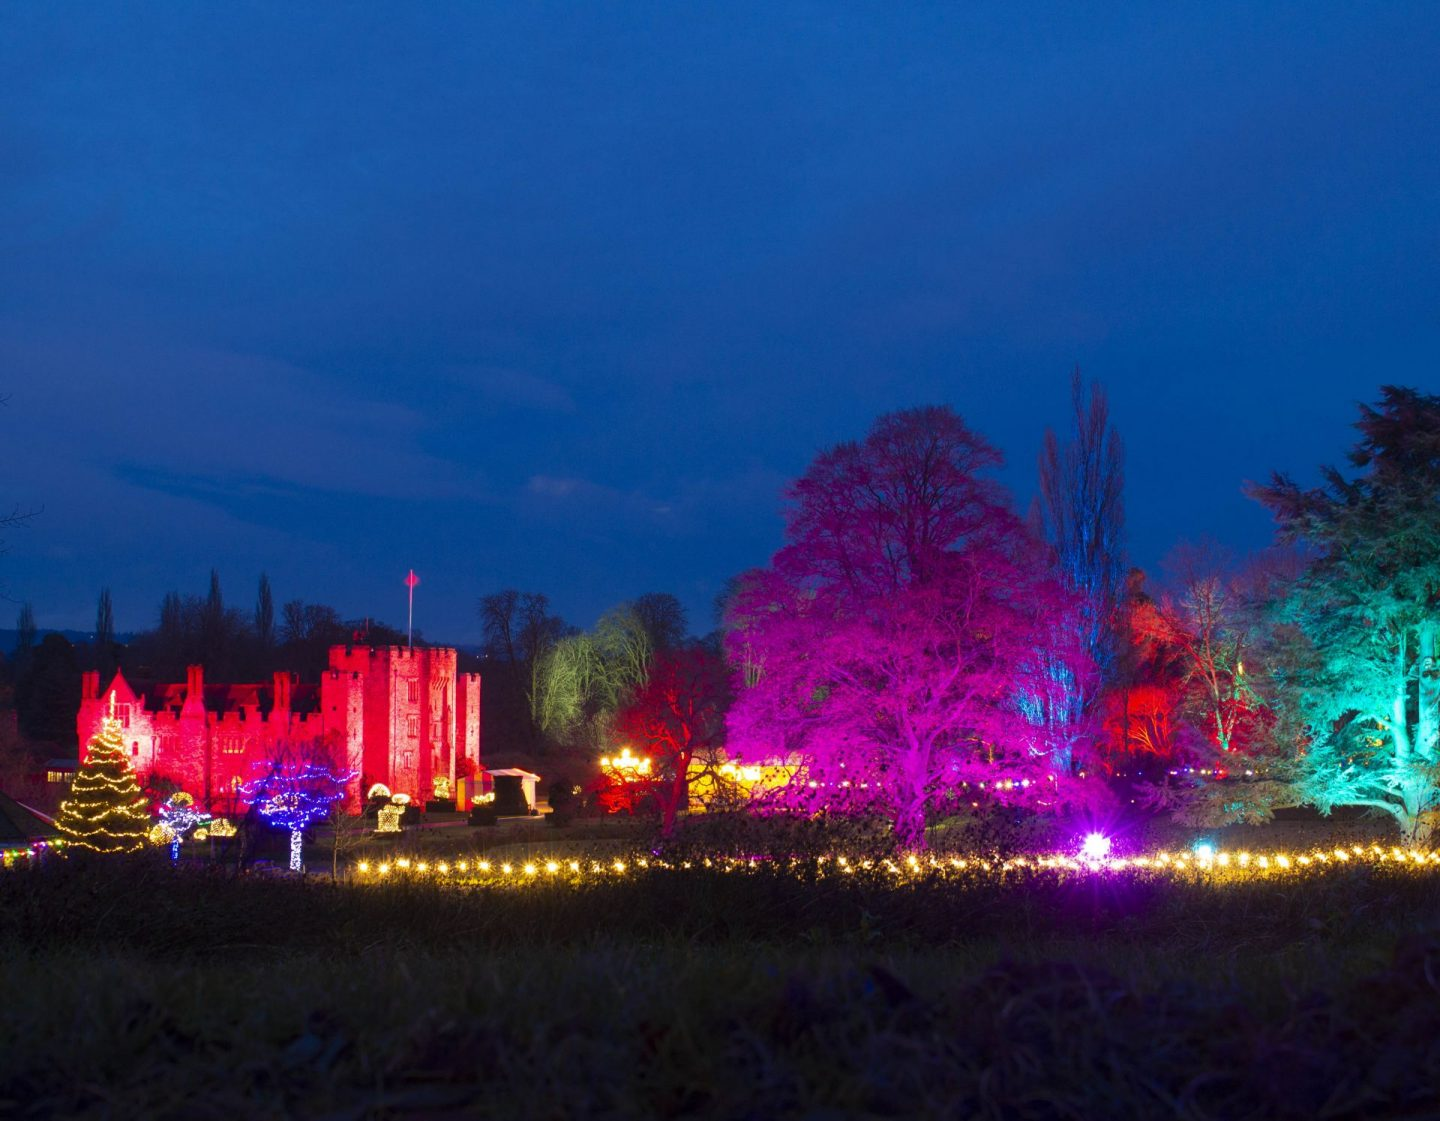 Hever Castle at night, long exposure photography, Hever castle at Christmas, Hever castle